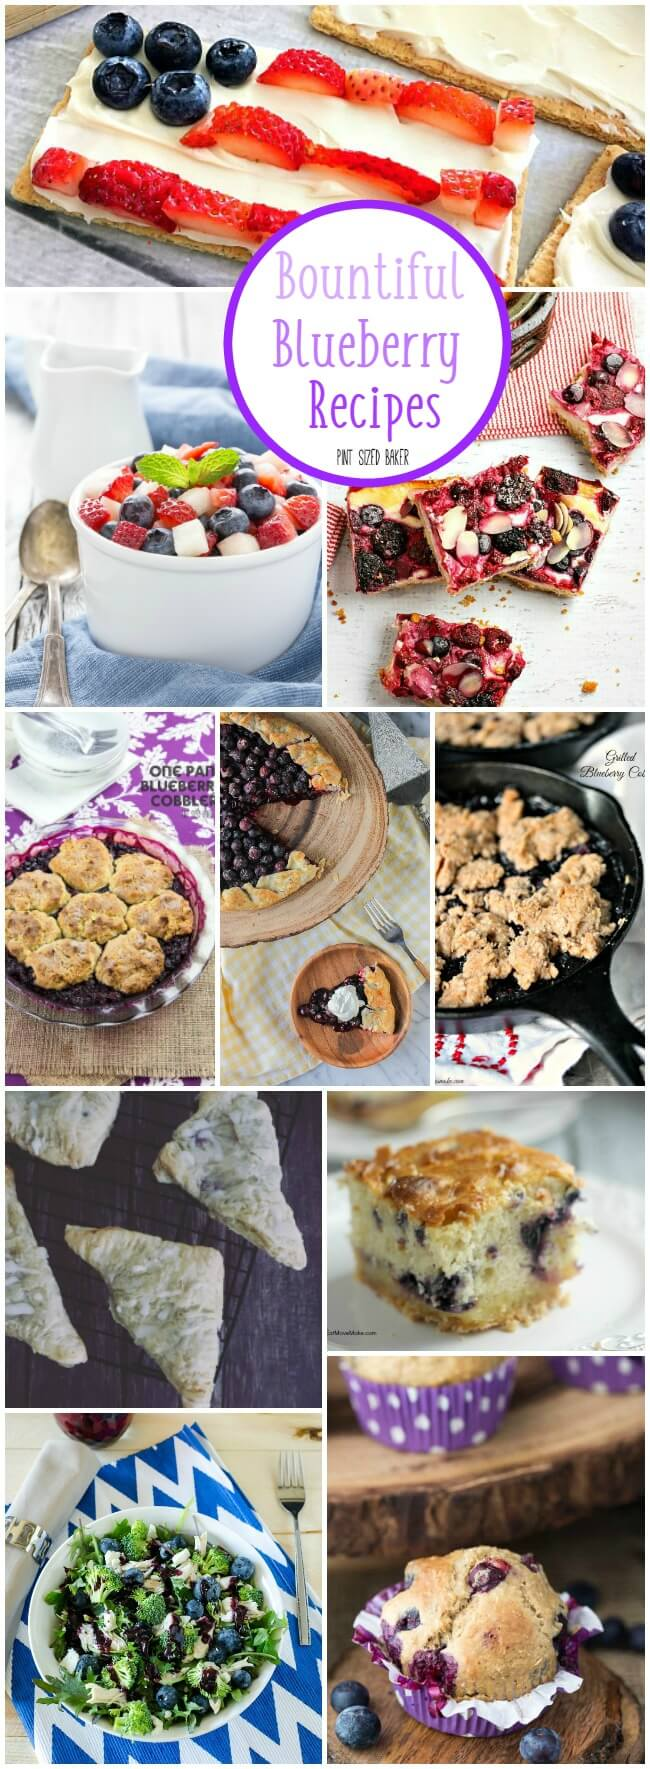 Fresh blueberries are my favorite! Here's 10 Bountiful Blueberry Recipes that are perfect for your summer desserts!